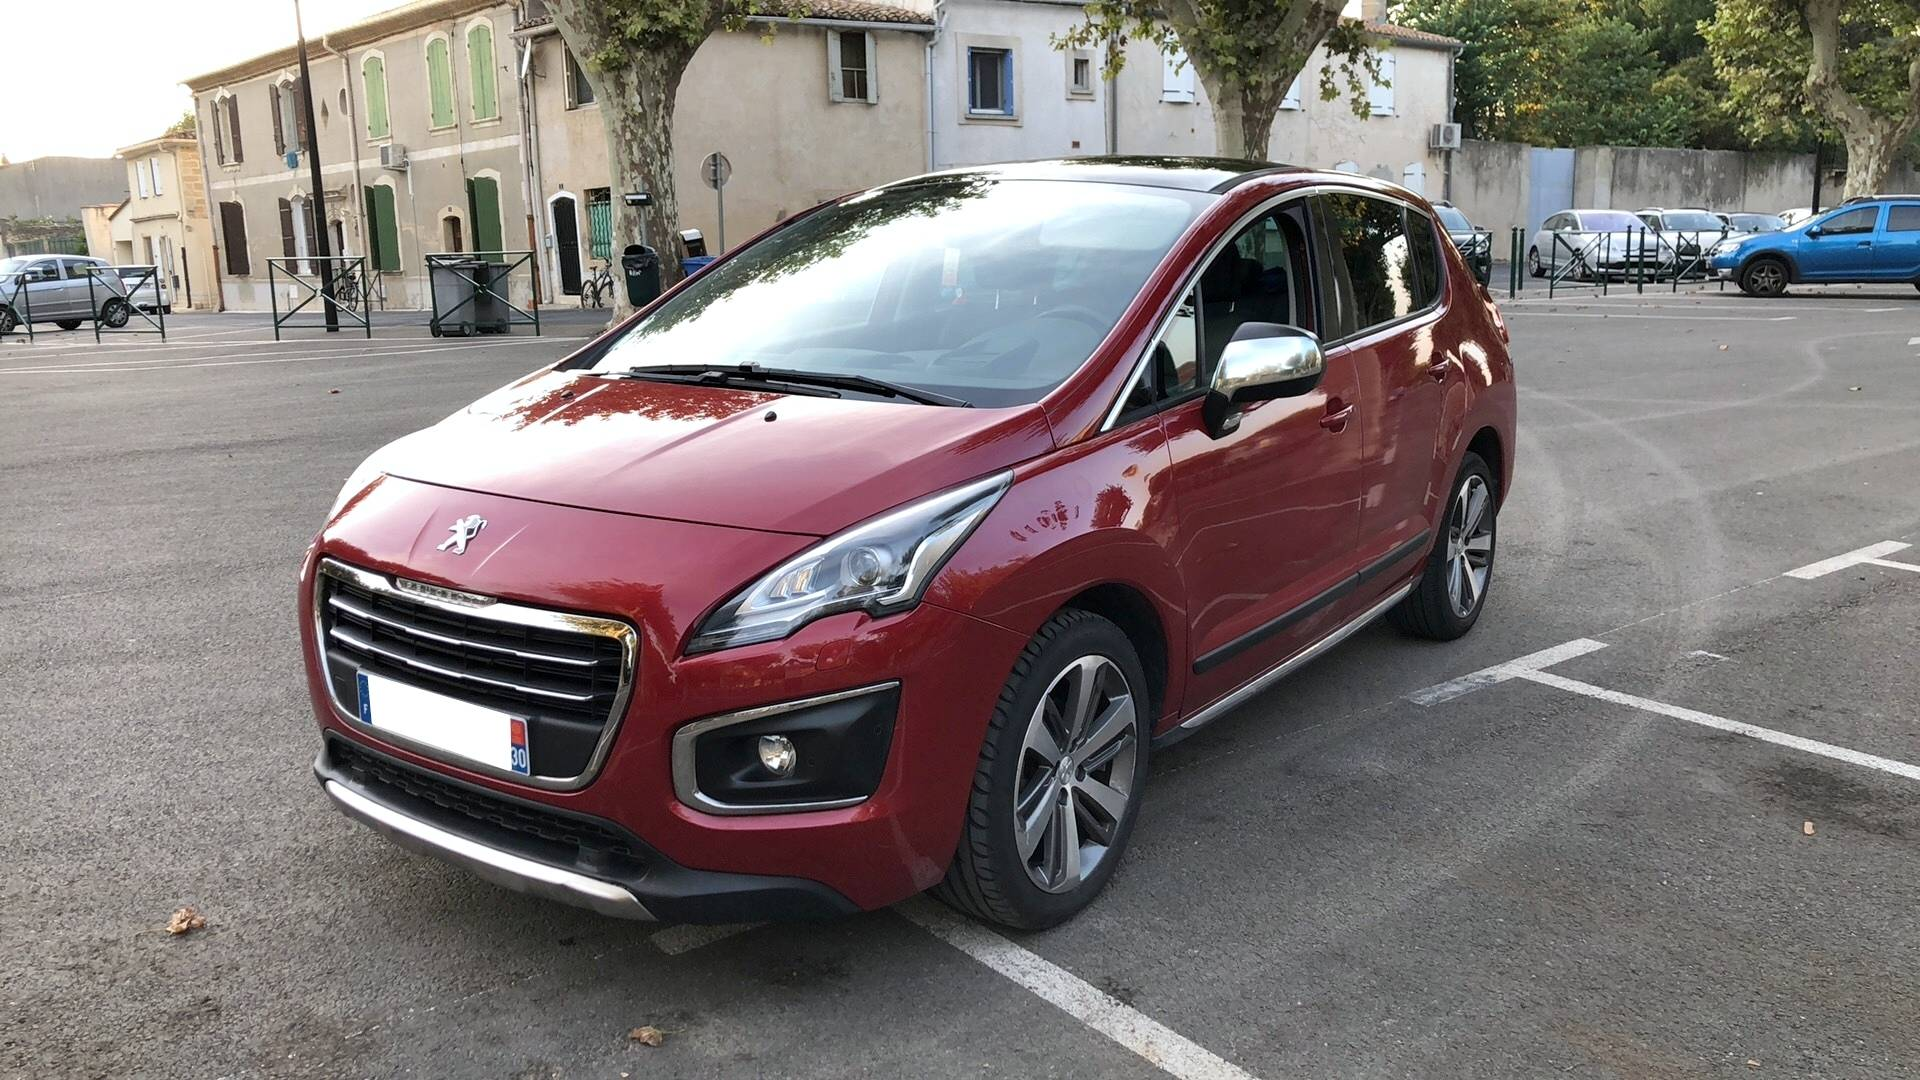 peugeot 3008 d'occasion 1.6 hdi 110 feline baillargues   carizy